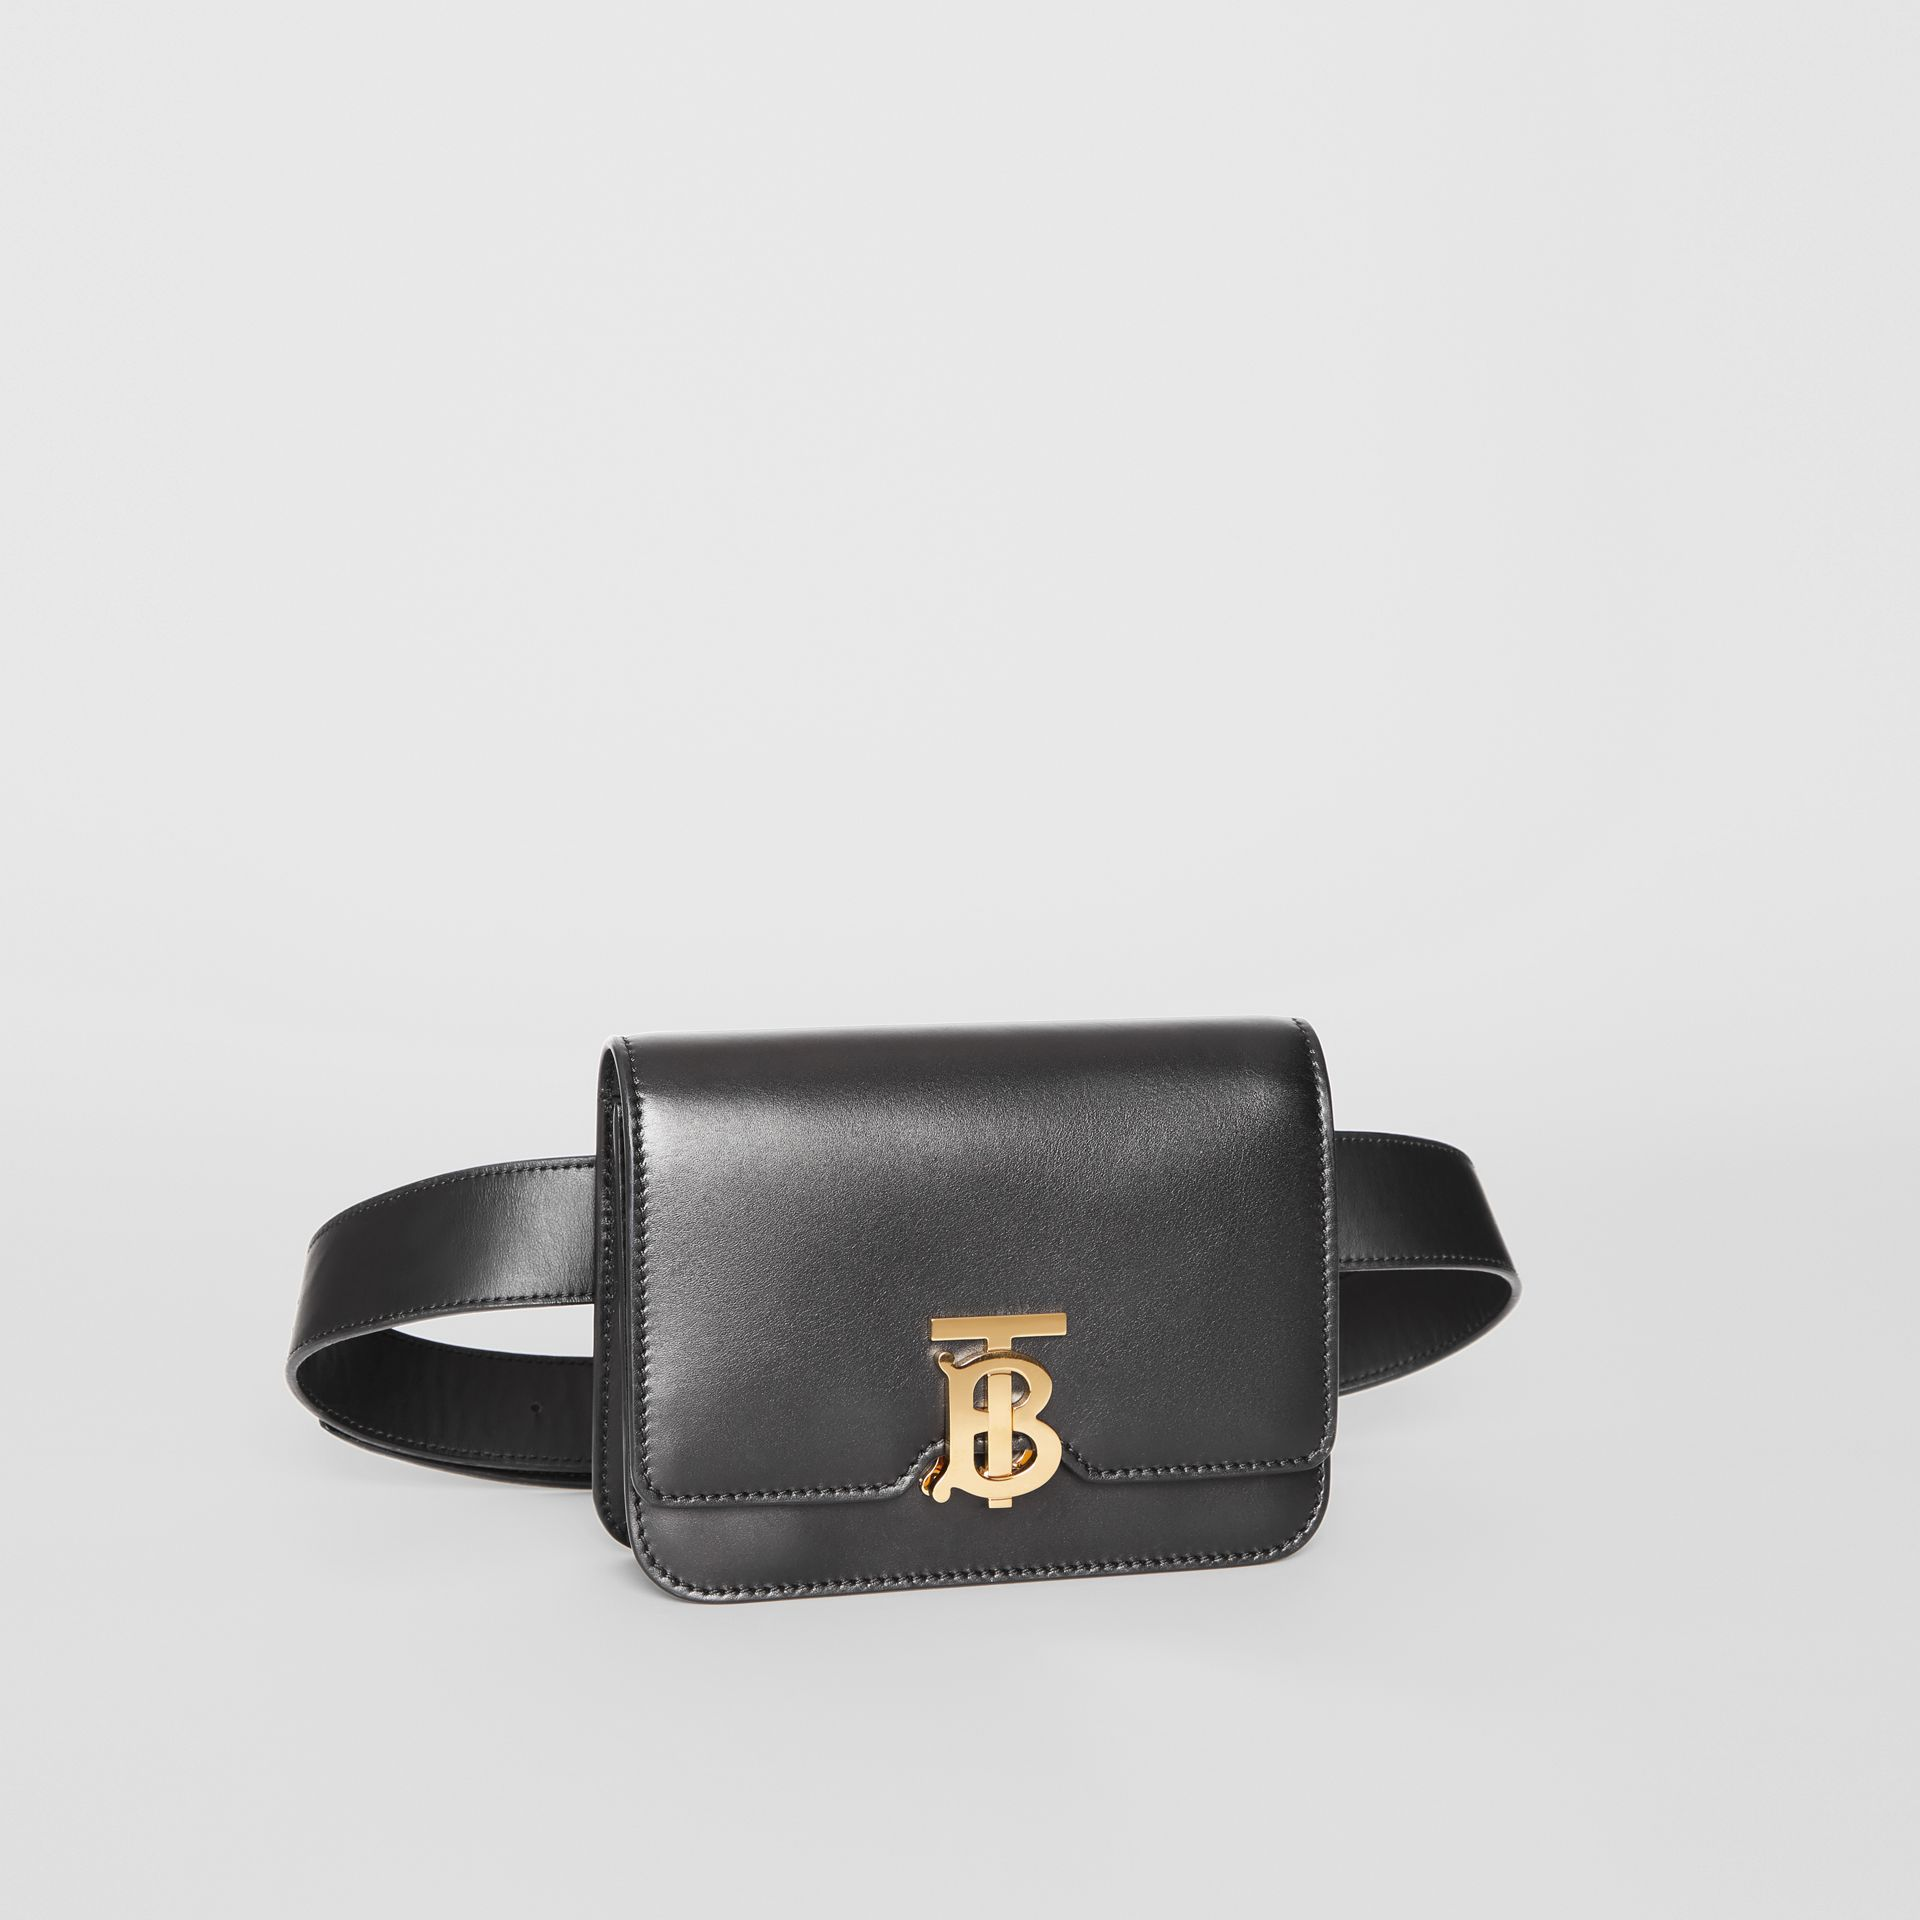 Belted Leather TB Bag in Black - Women | Burberry - gallery image 7